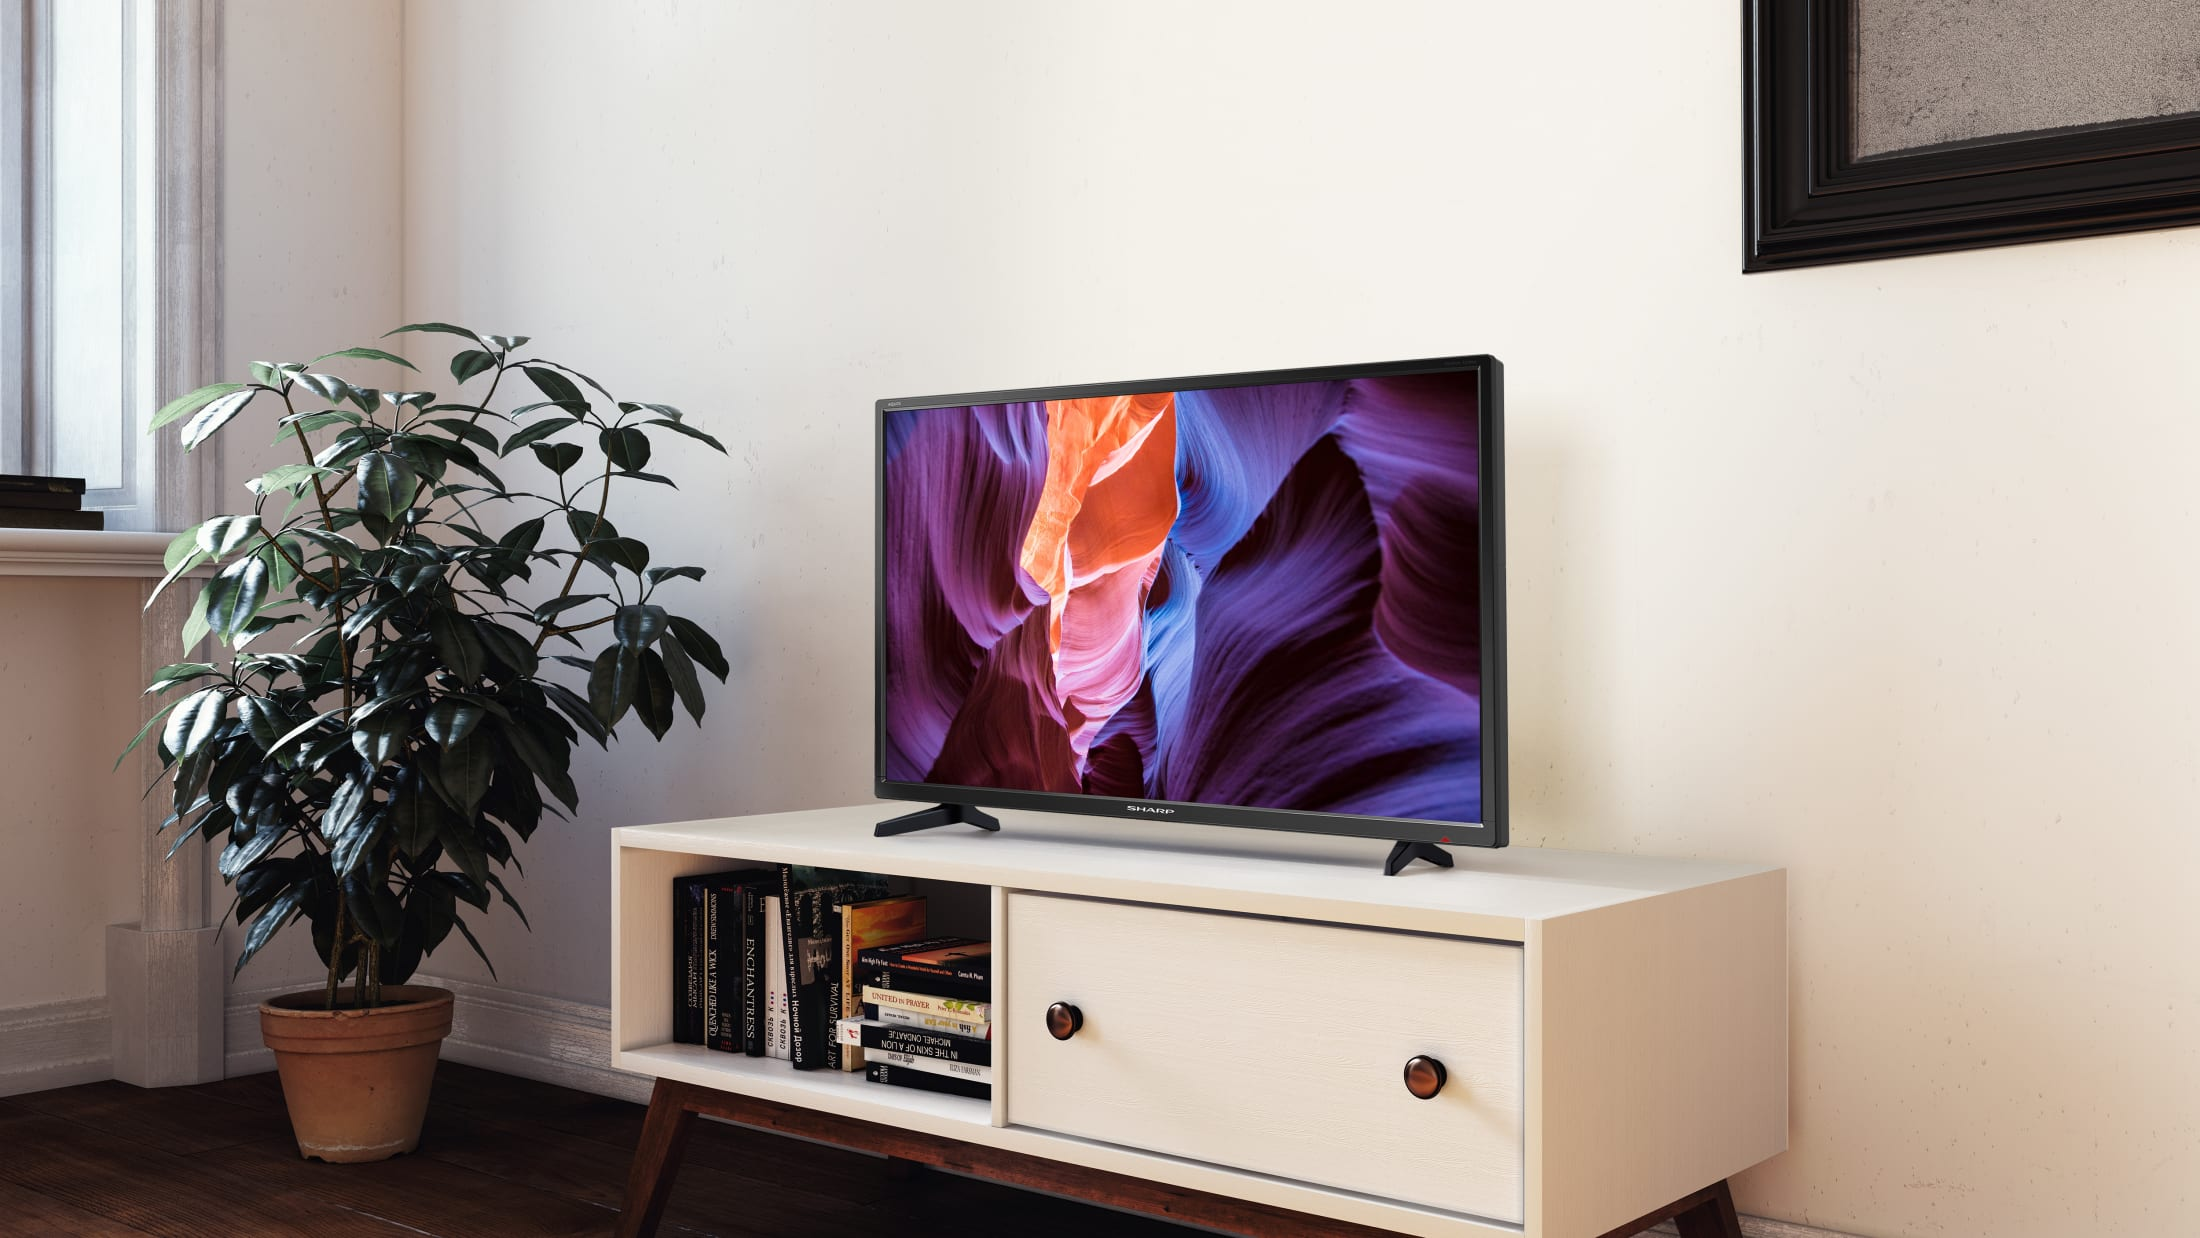 The 32CB2E is a HD Ready LED TV with exceptional picture quality.